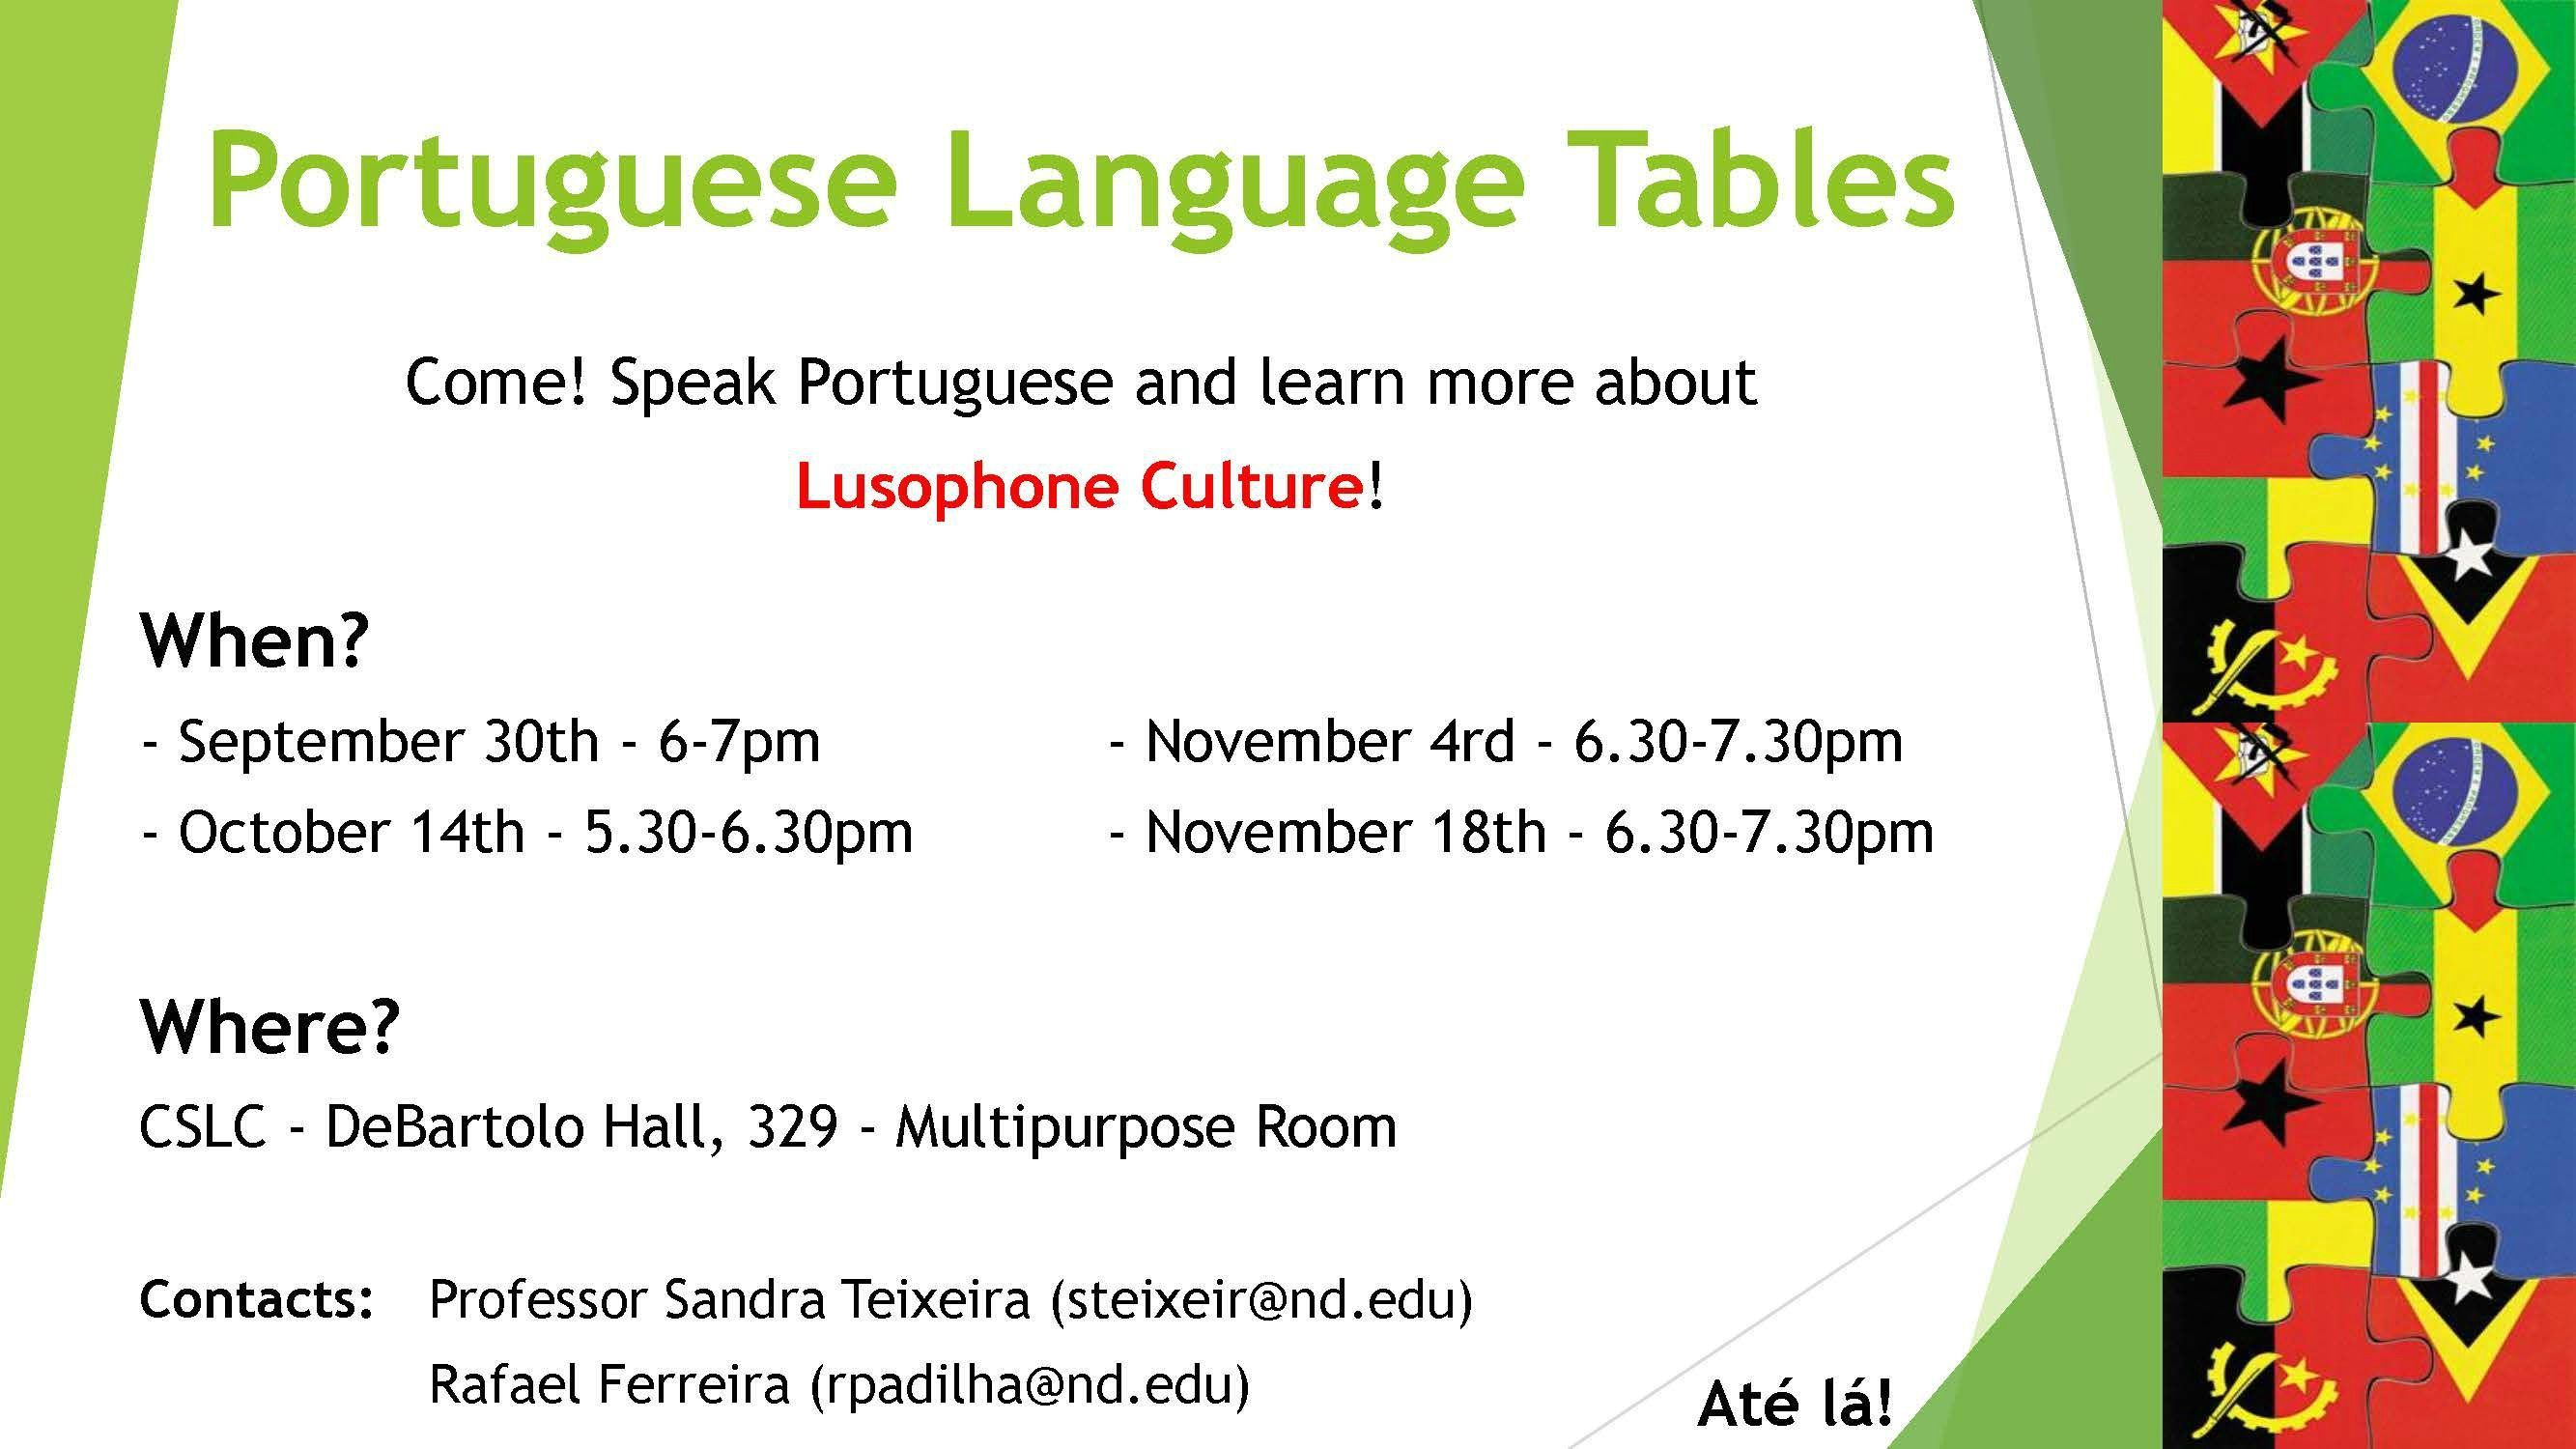 Portuguese Language Tables